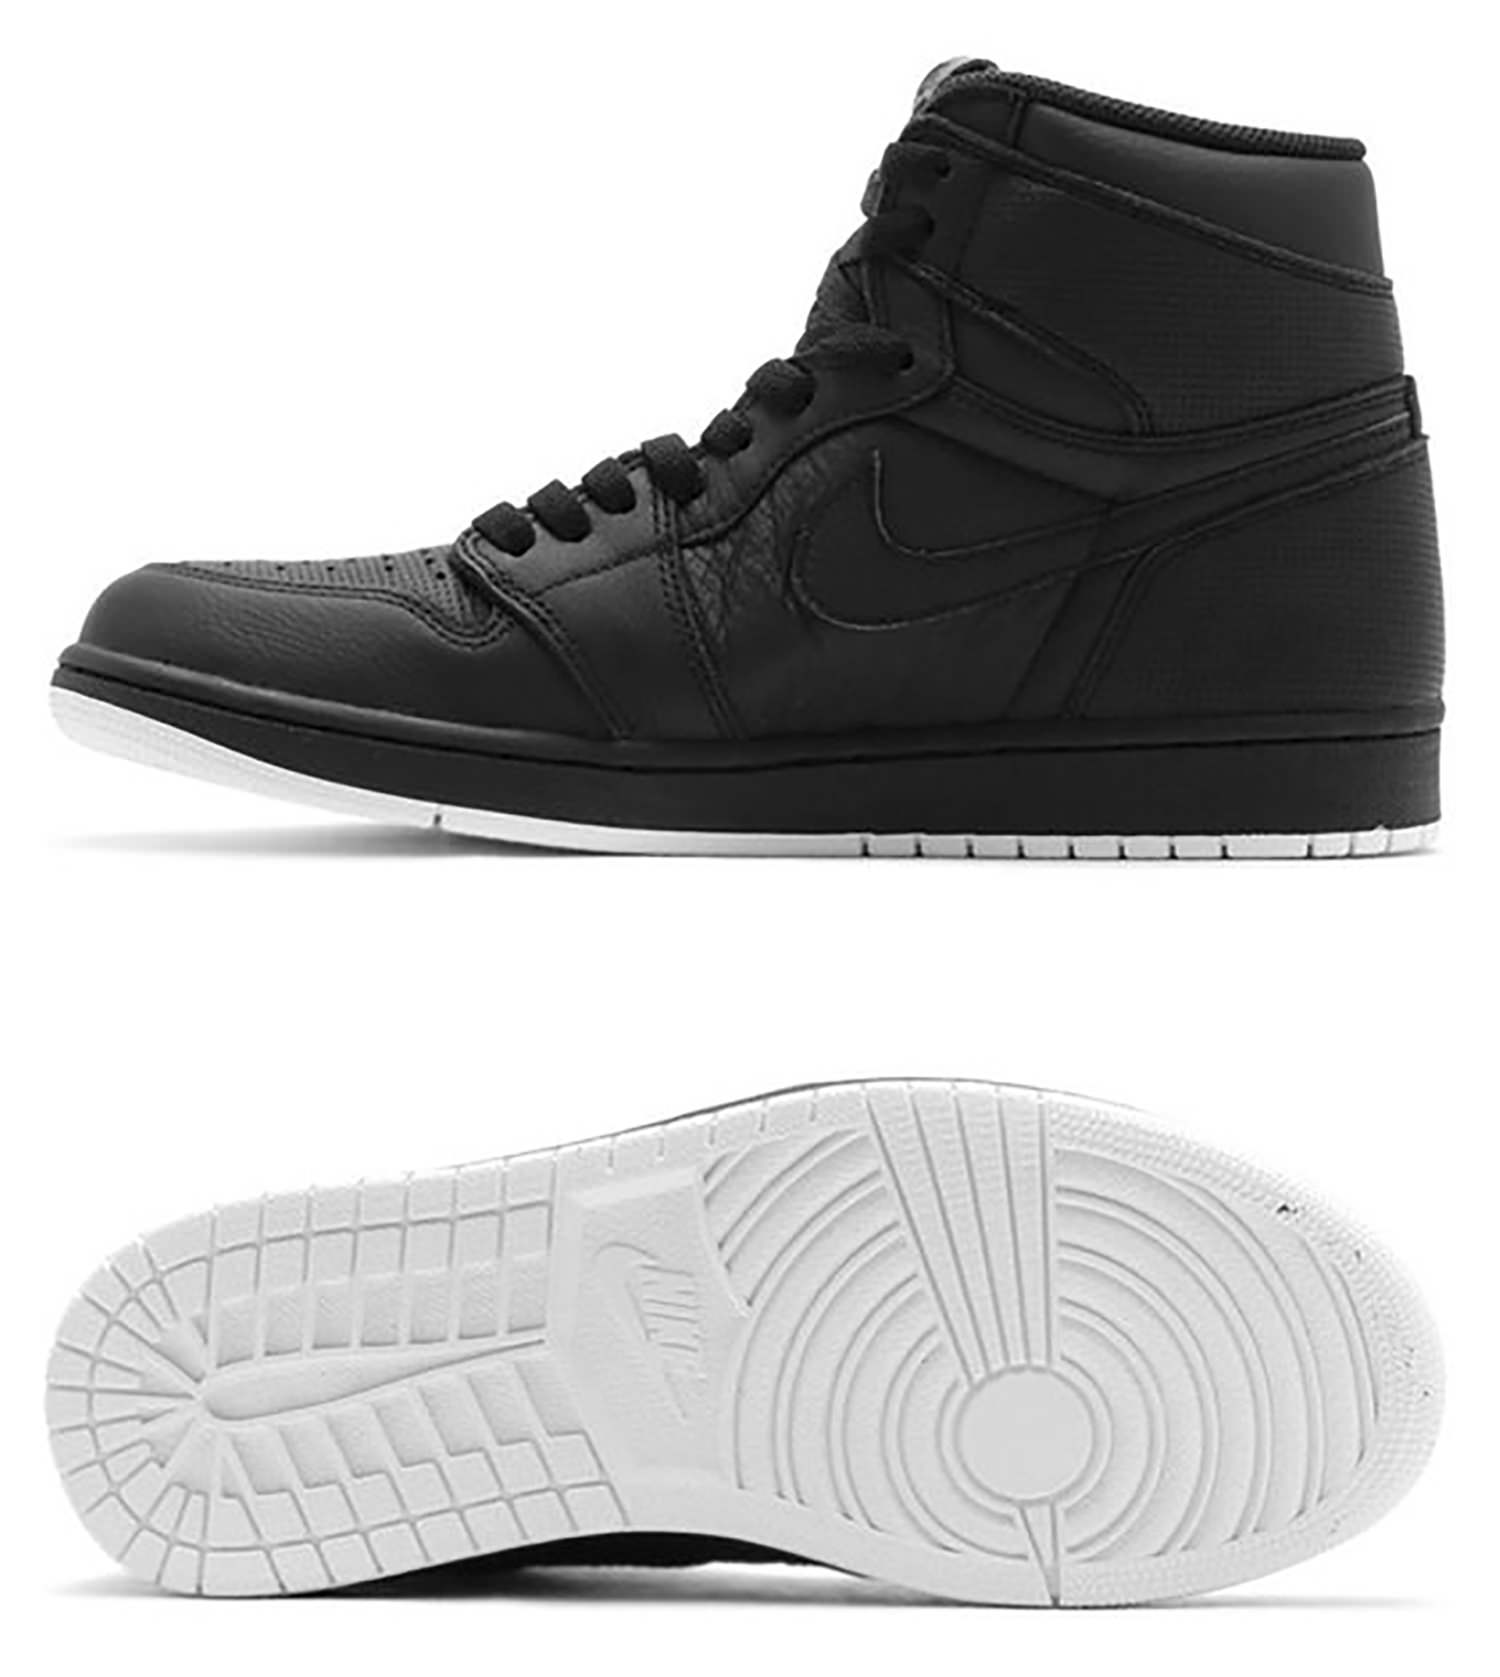 air-jordan-1-high-perforated-pack-8